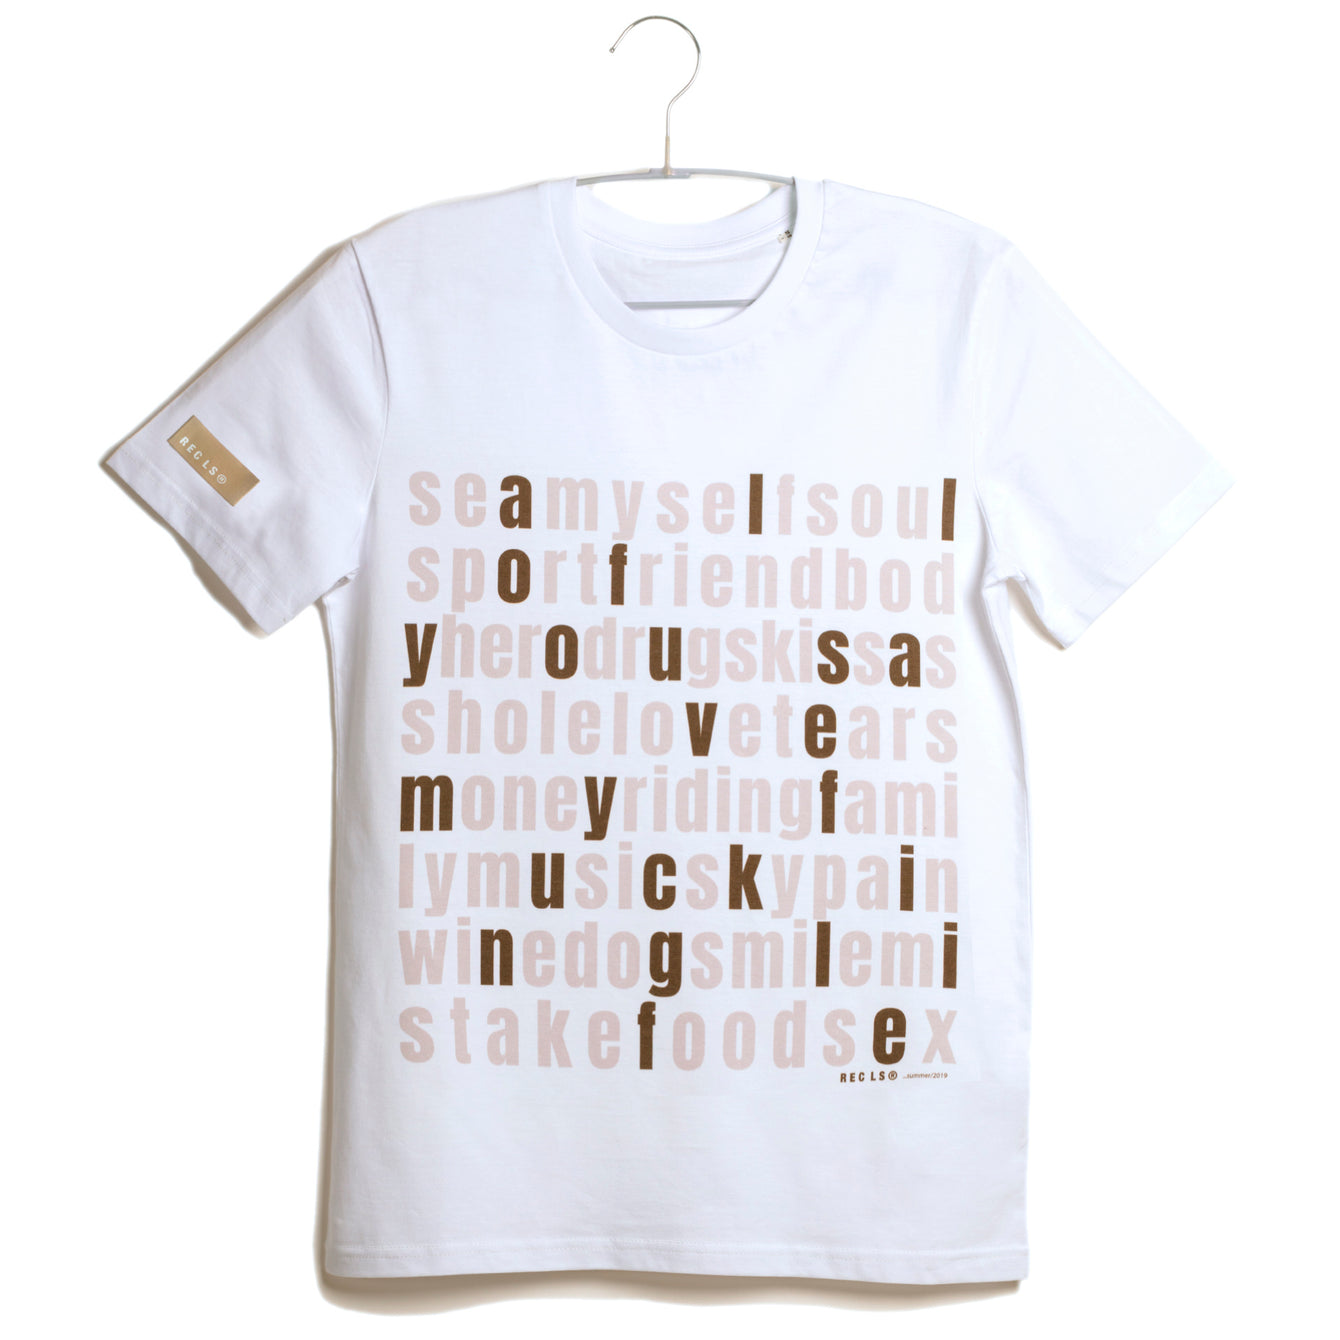 TextTee All of you, T-shirt